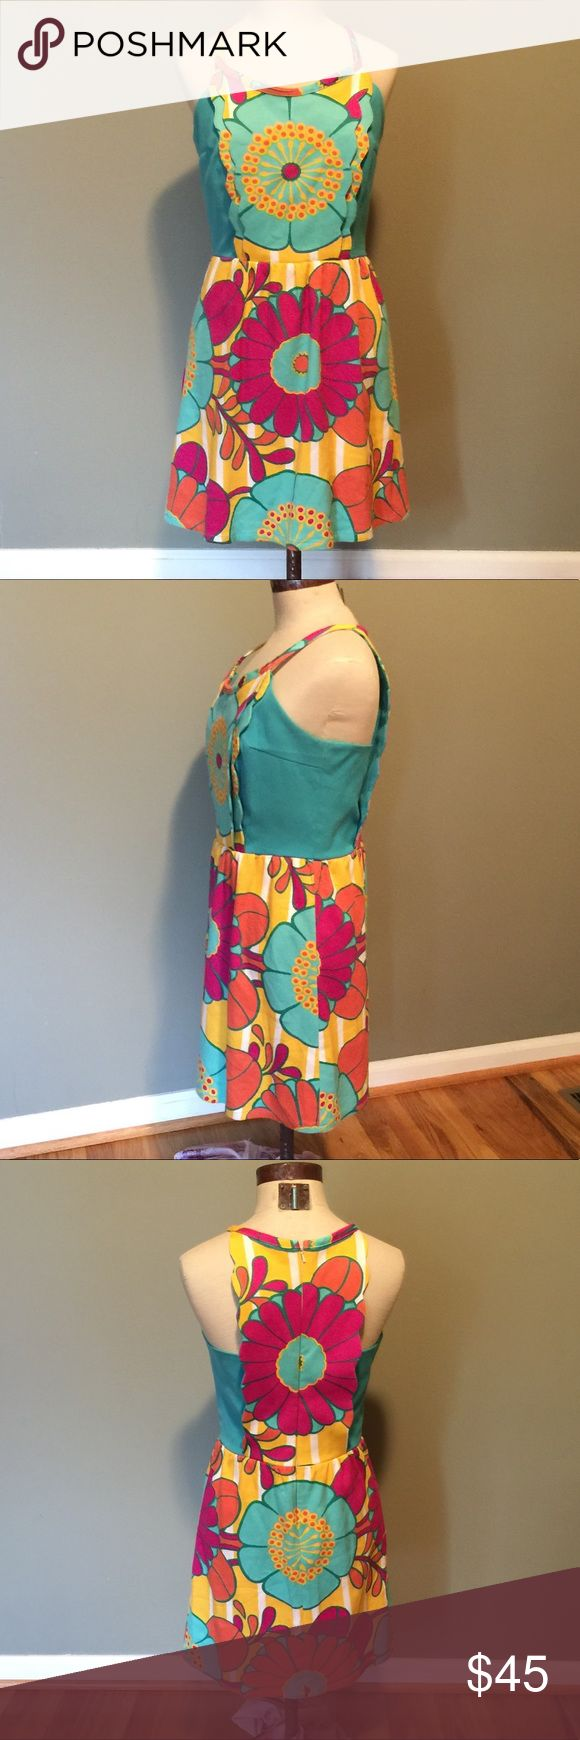 Anthropologie Judith March dress sz M floral Anthropologie Judith March apron style dress.  So unique, the fabric is a cotton polyester spandex pique in a colorful floral  print.  Size is medium.  I'm happy to answer any questions or post any pics as needed Judith March Dresses Midi